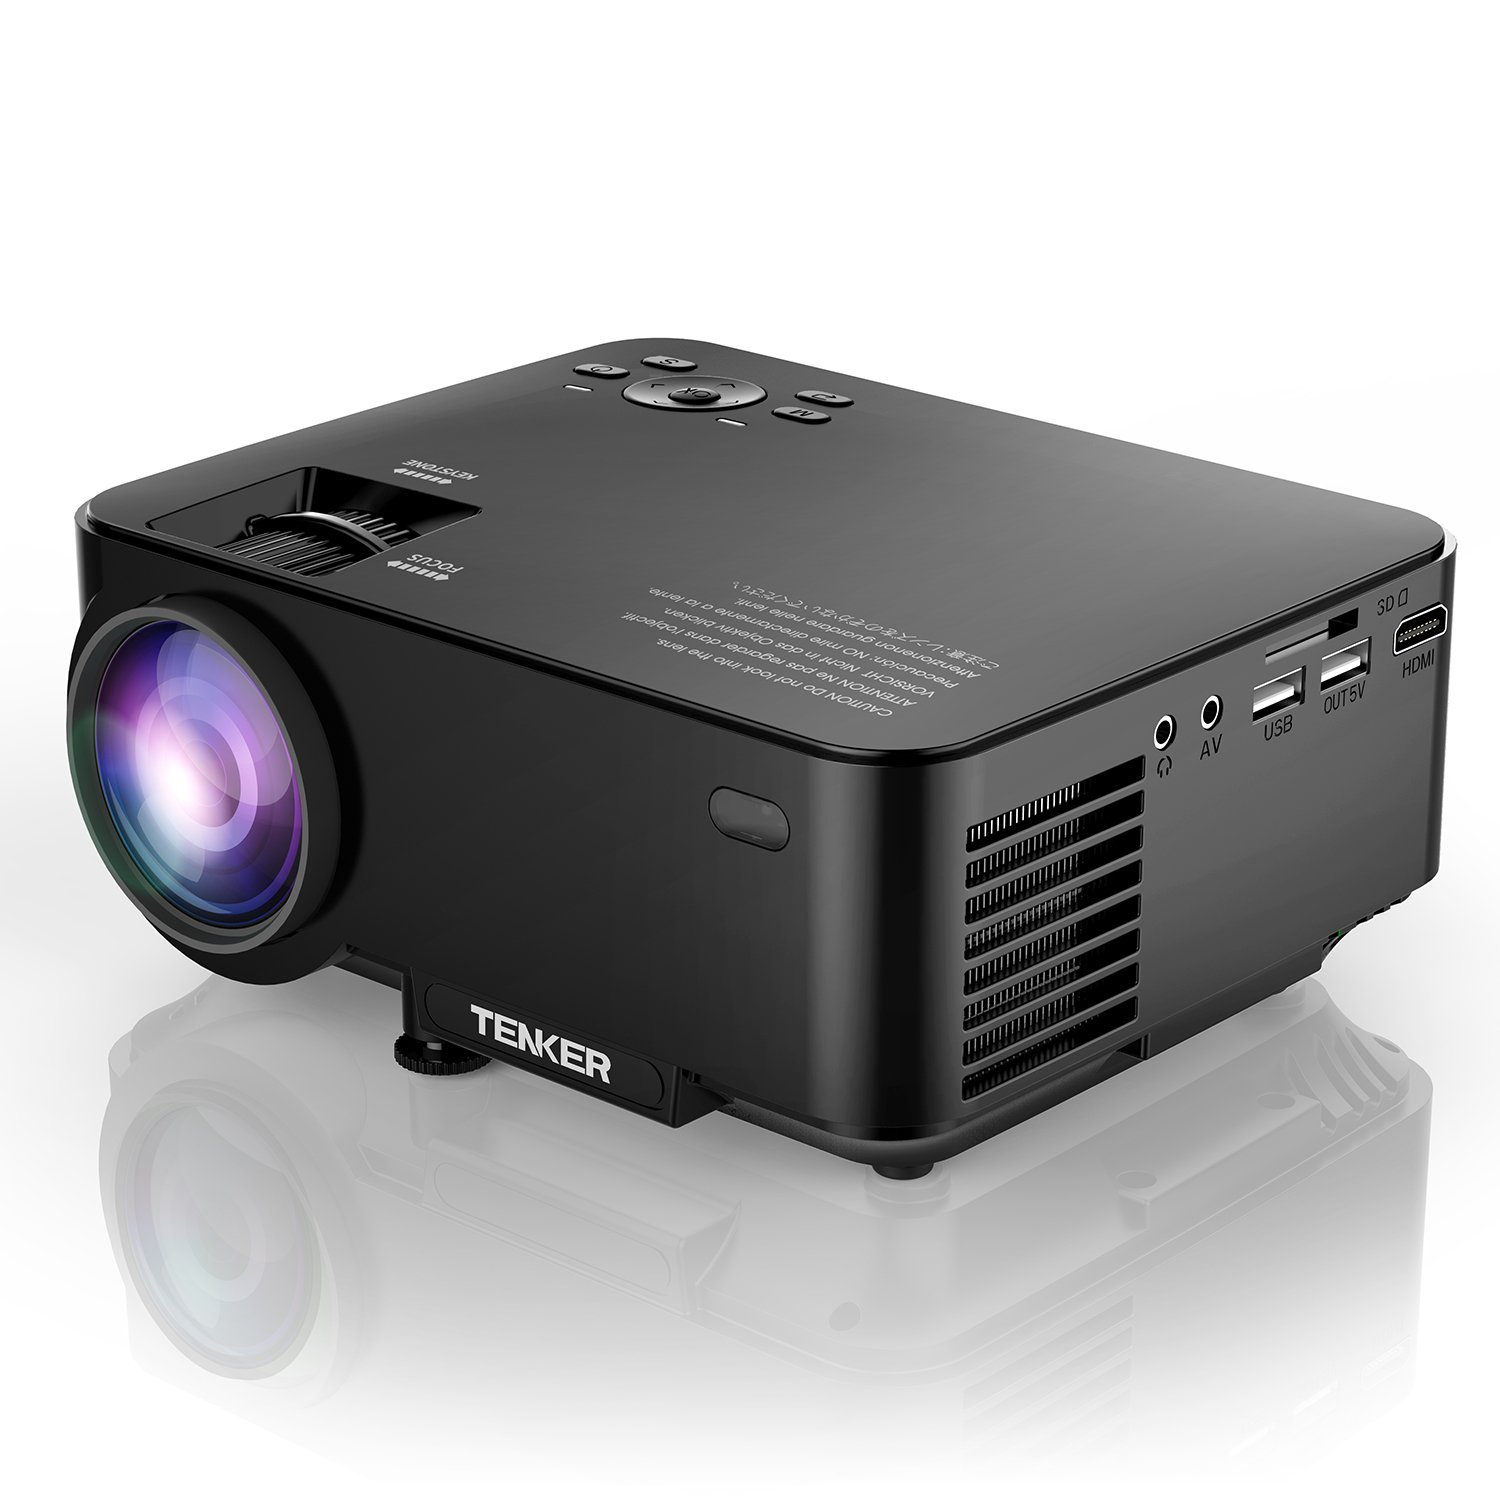 TENKER Upgrade +10% Lumens 4.0'' LCD Mini Projector, Portable Home Theater Projector 170'' Display, Support 1080P HDMI USB SD Card AV VGA for TV Laptop Game Smartphone Includes HDMI Cable